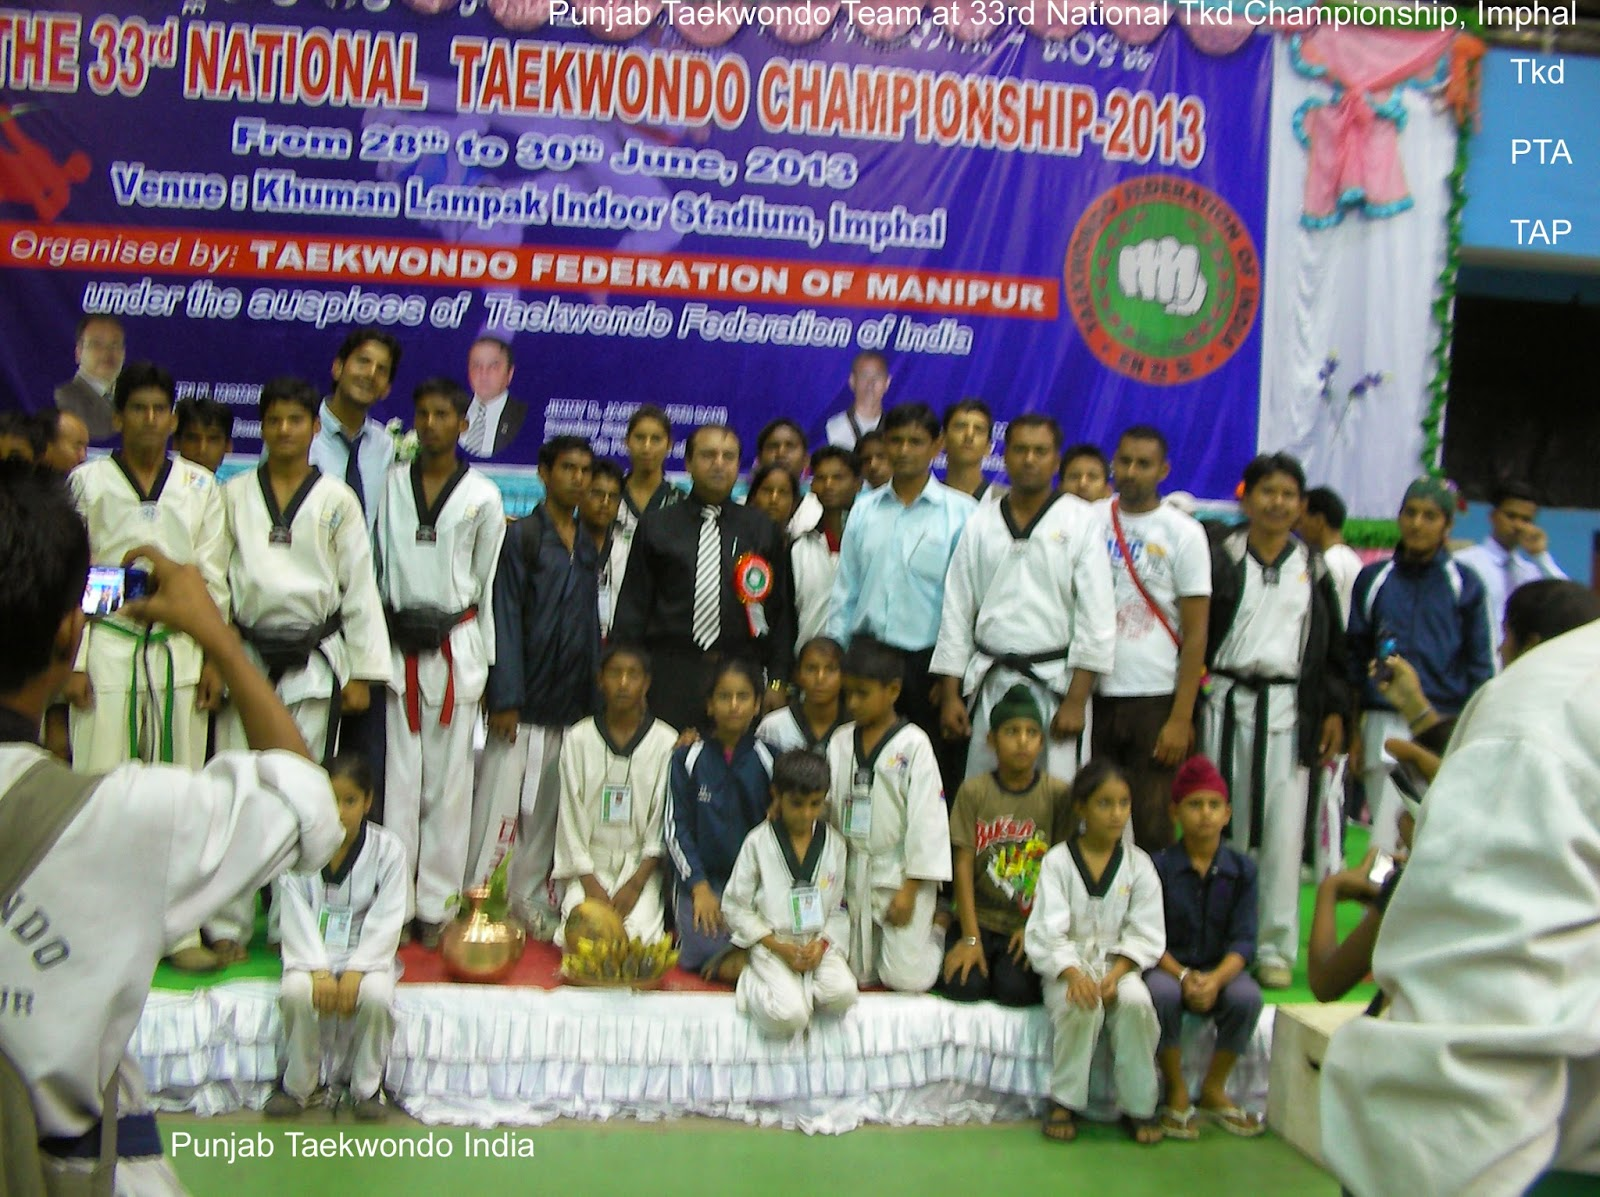 Punjab Taekwondo team with Grandmaster Jimmy R. Jagtiani at Khulam Lampak Stadium, Imphal, Manipur, During 33rd National Tkd Championship, Taekwondo, Martial Arts, Fitness, Tkd, Championships, Training, Classes, Coaching, Self-defence, Girls, Women, Safety, Fitness,  Mohali, SAS Nagar, near Chandigarh, Punjab, India, Shere, Lions, Videos, Movies, Master, Er. Satpal Singh Rehal, Rehal, Academy, Association, Federation, Clubs, Satpal Rehal, Korean Judo Karate, Chandigarh, Reiki, Healing, Kot Maira, Garhshankar, Hoshiarpur, Jalandhar, Amritsar, Patiala, Mansa, Ludhiana, Ferozepur, Sangrur, Moga, Pathankot, Gurdaspur, Barnala, Nawanshahar, Ropar, Ajitgarh, Fatehgarh Sahib, Taran Taran, Patti, Faridkot, Winners, Medal Ceremony, Chief Guest, TAP, PTA, Grandmaster, Reiki, TFI, Jimmy R Jagtiani, Lucknow, School, Games